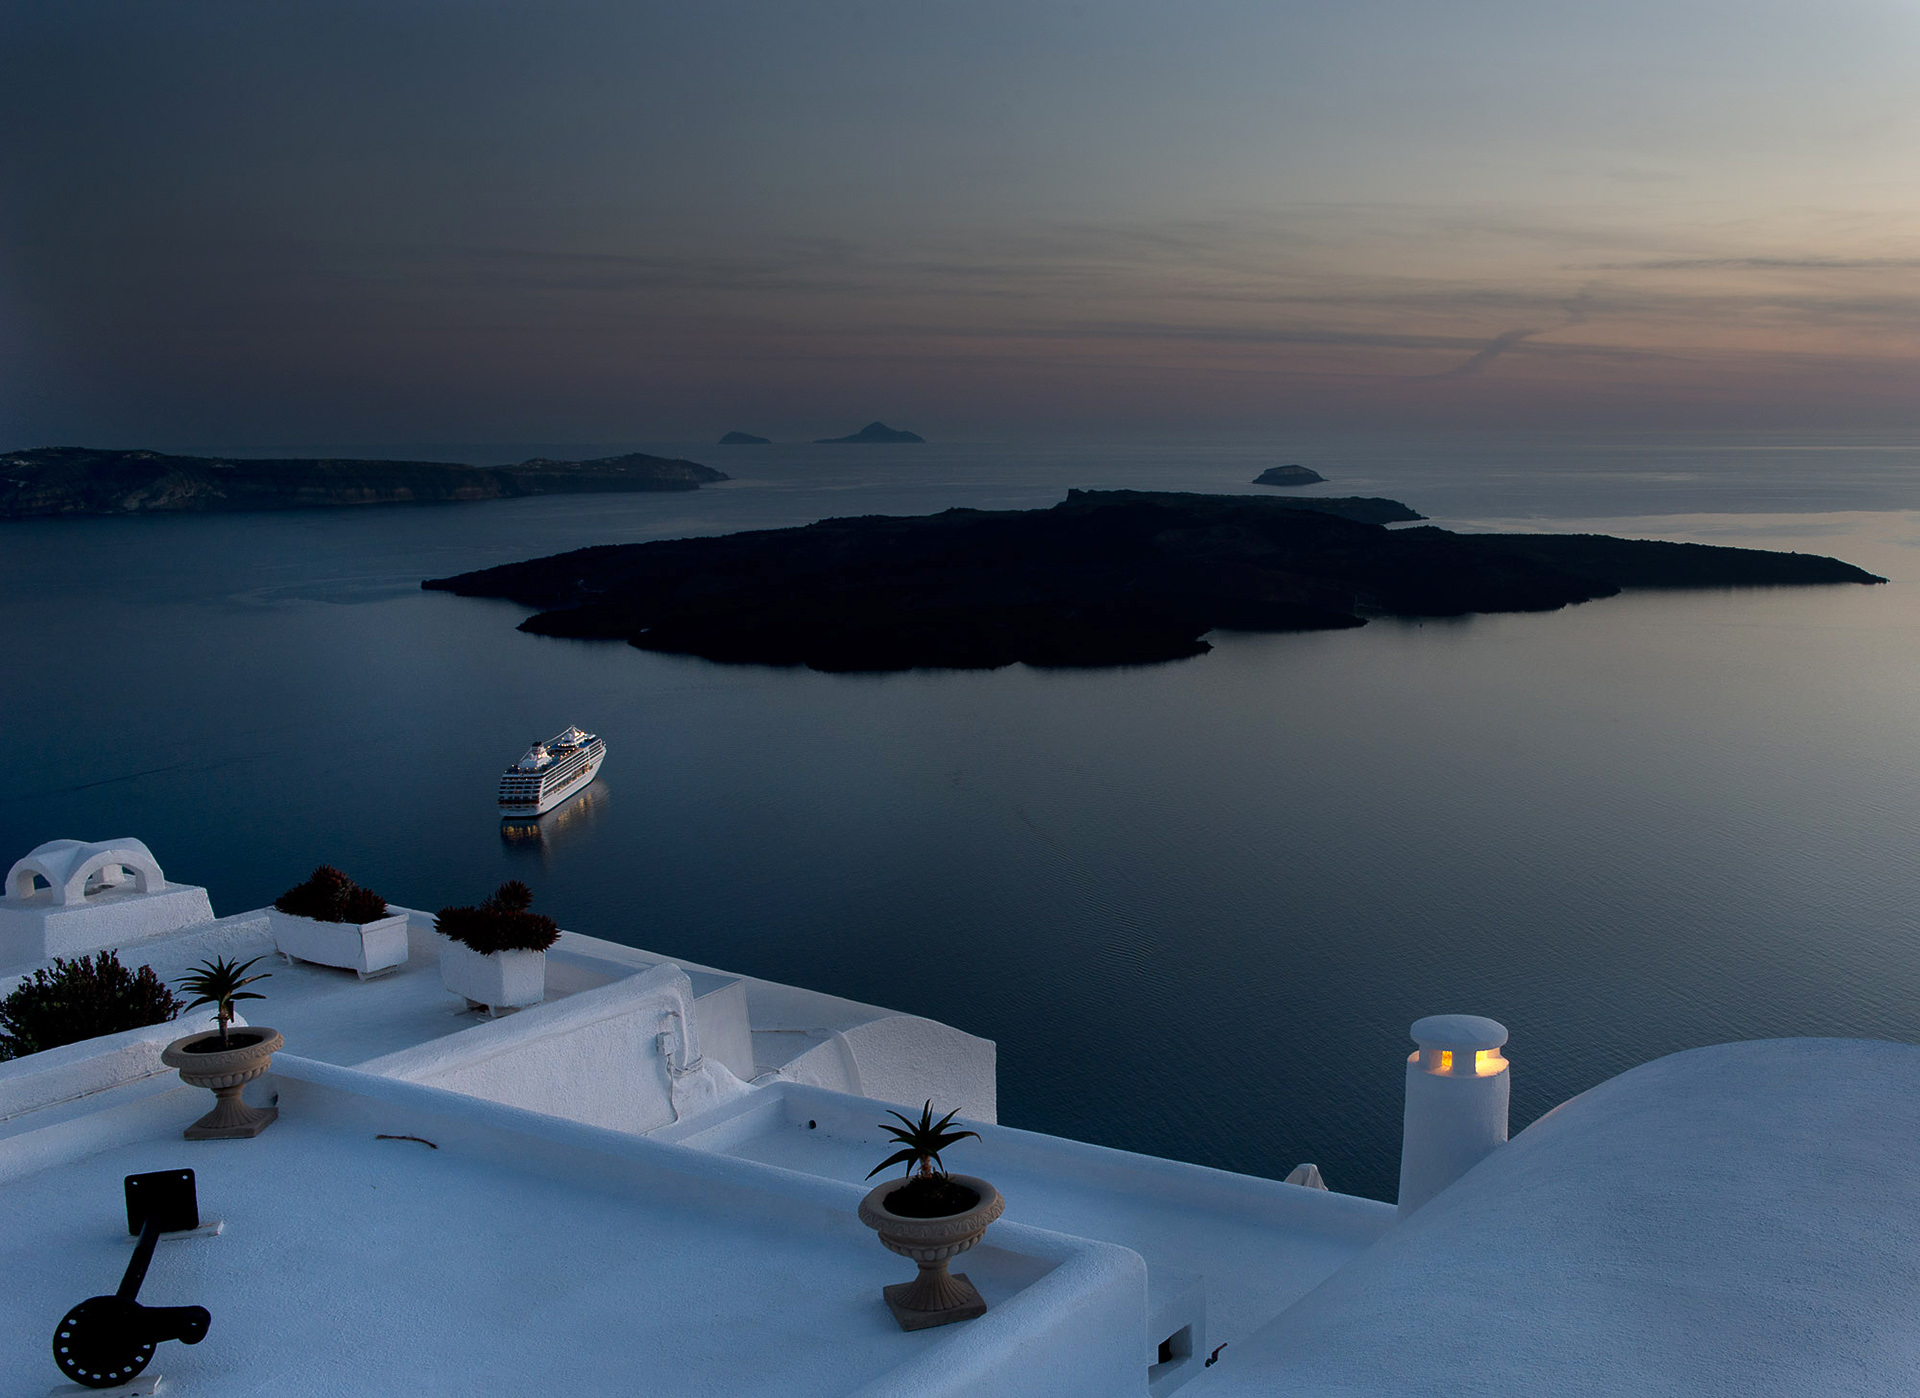 santorini-greece-by-andre-ermolaev-05